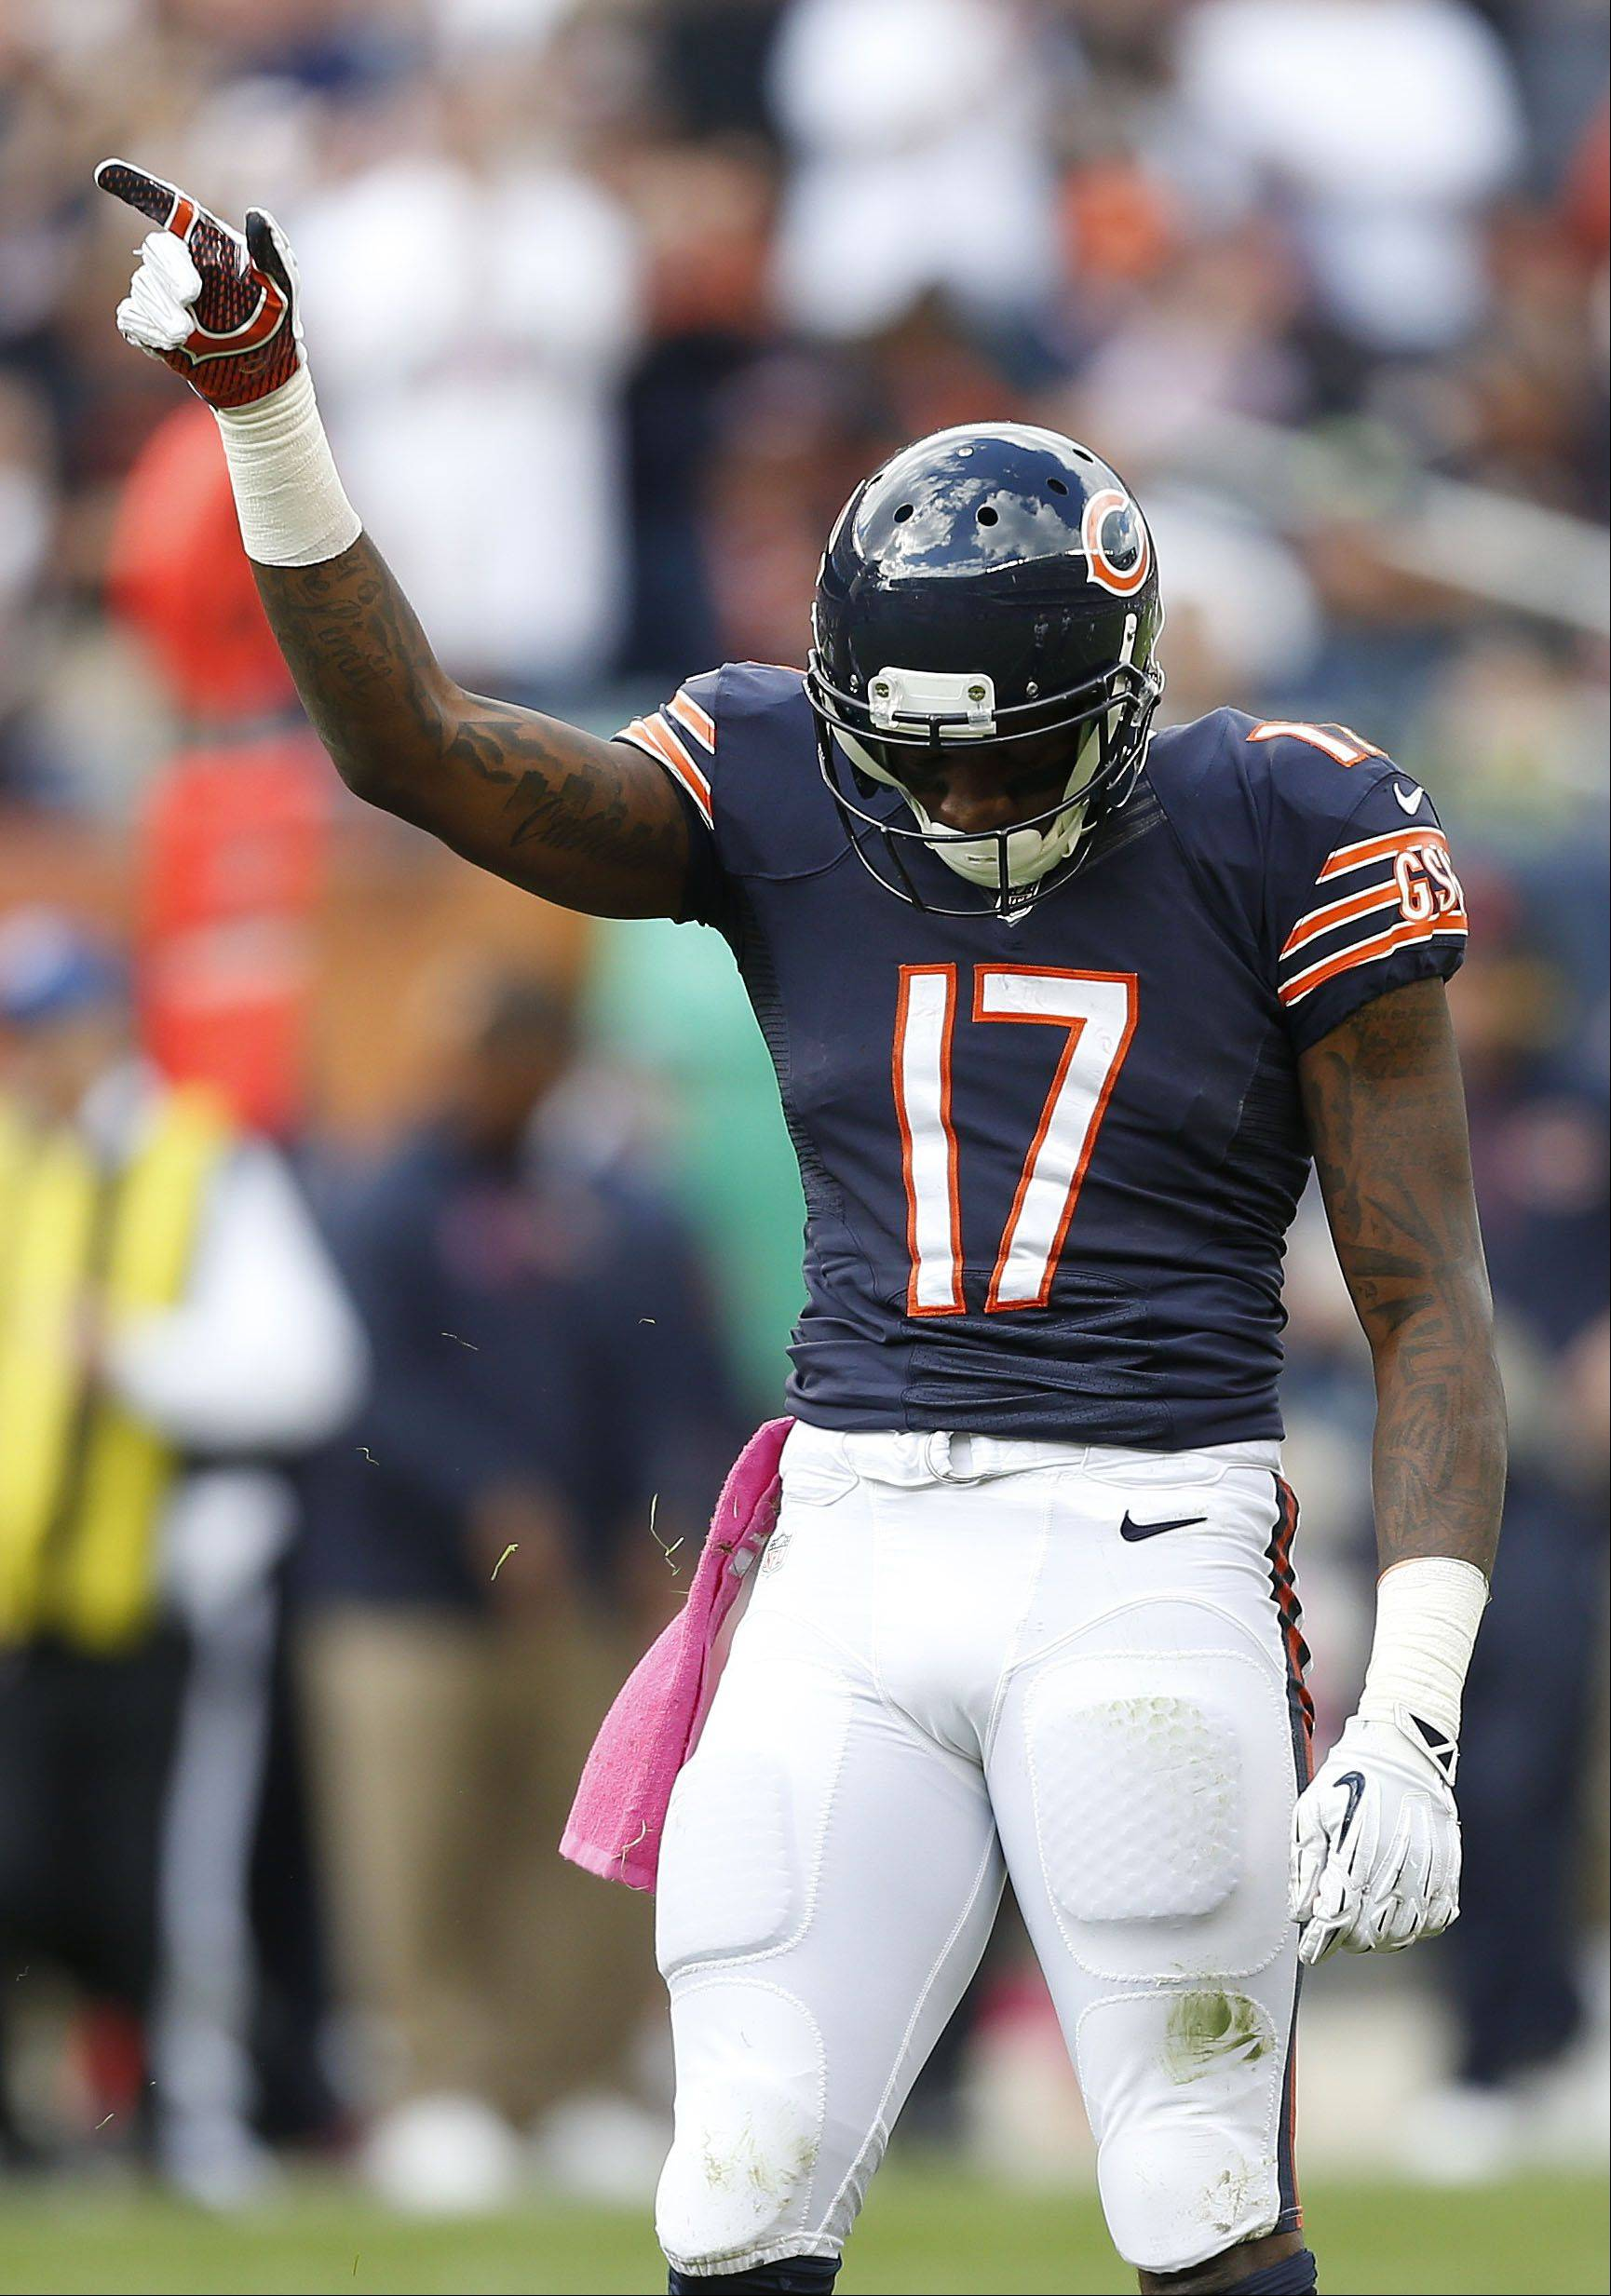 Chicago Bears wide receiver Alshon Jeffery points after a first-down catch.